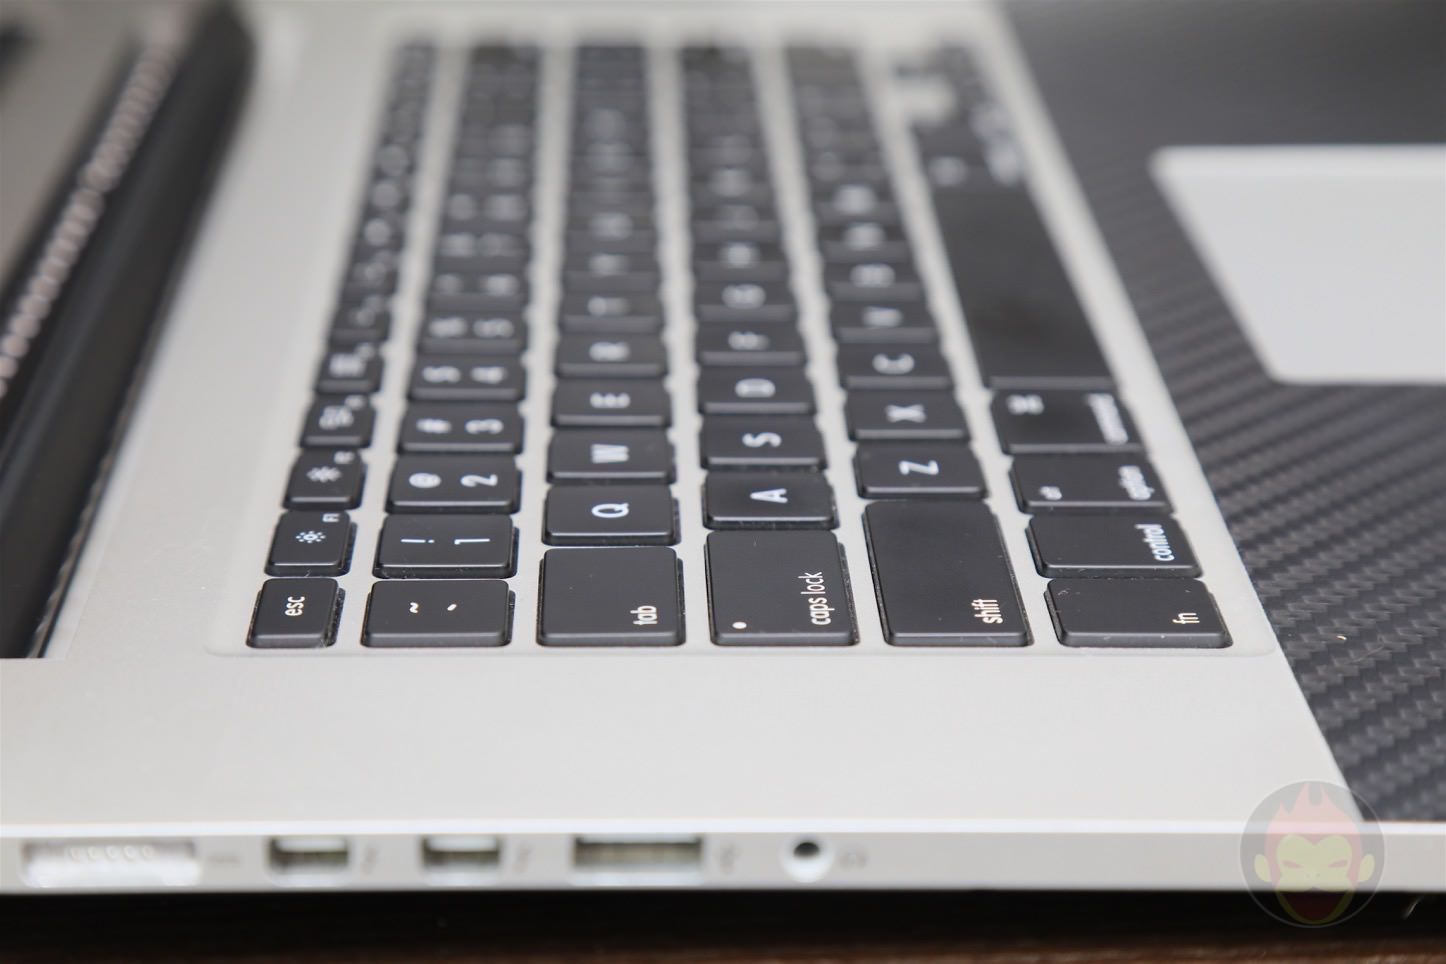 MacBook Pro 15inch 2015 2016 comparison